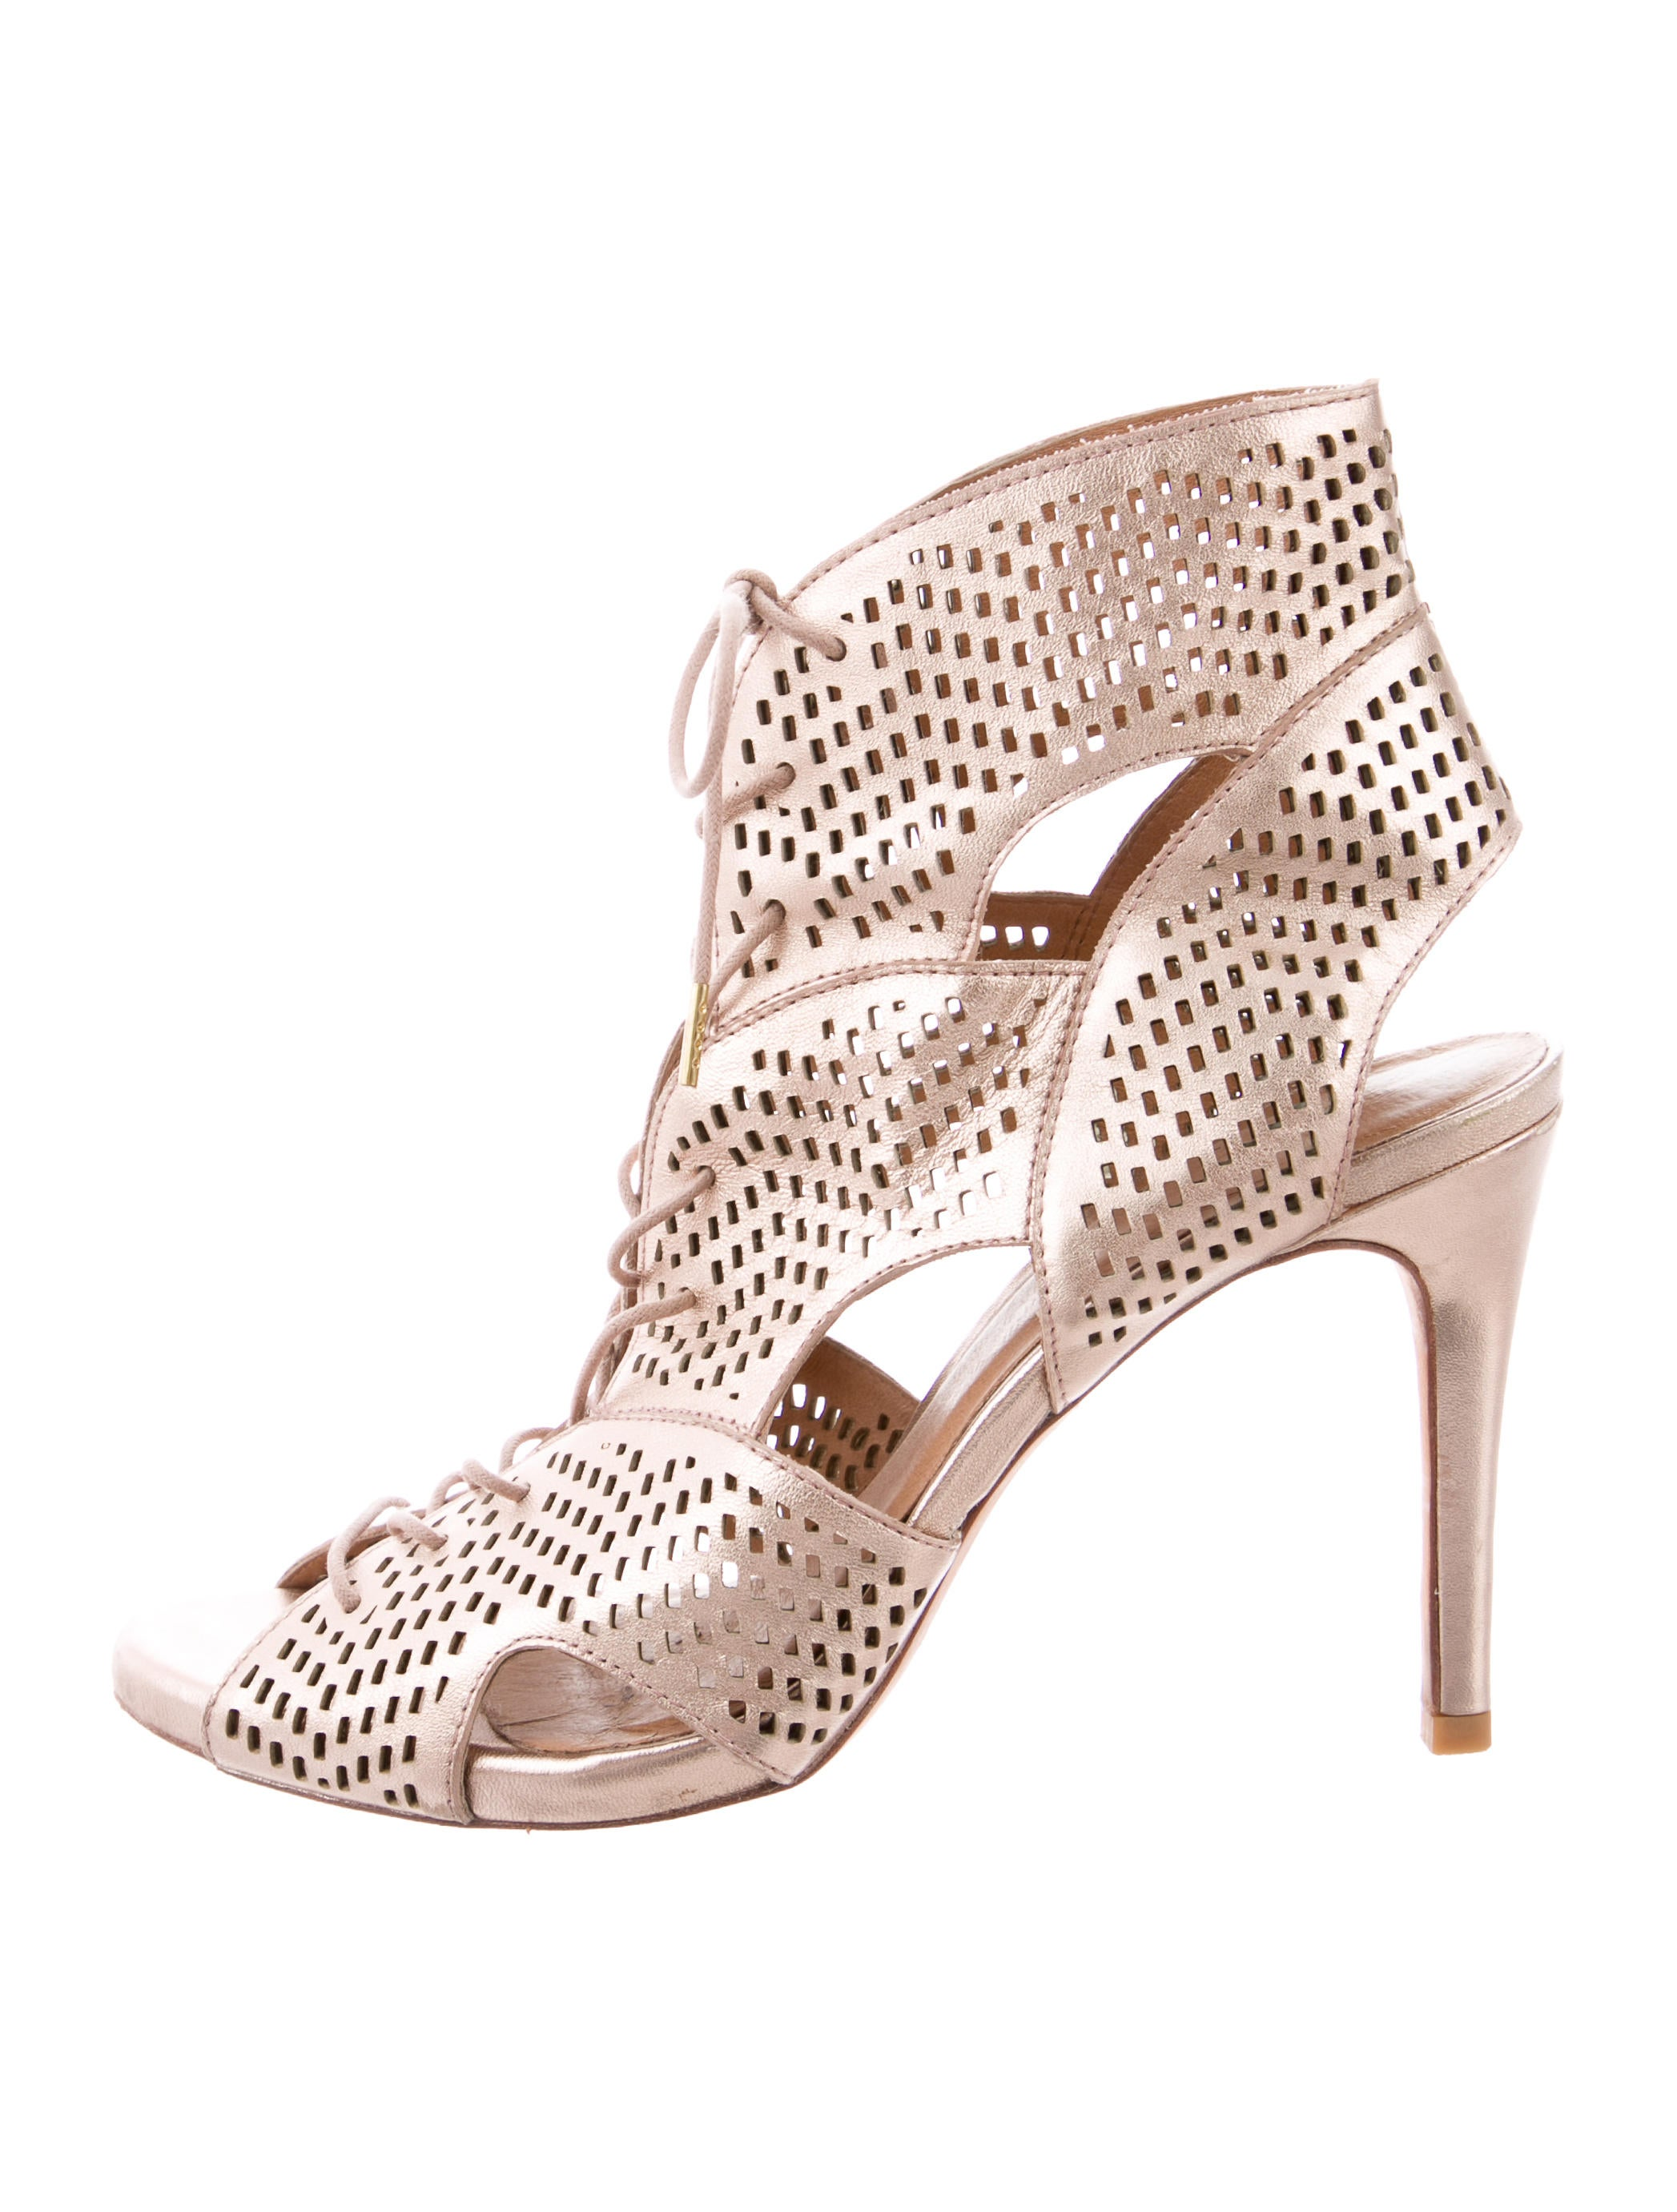 Joie Perforated Leather Sandals best place cheap online outlet cheap price free shipping outlet locations free shipping fashion Style gFrAjZ867